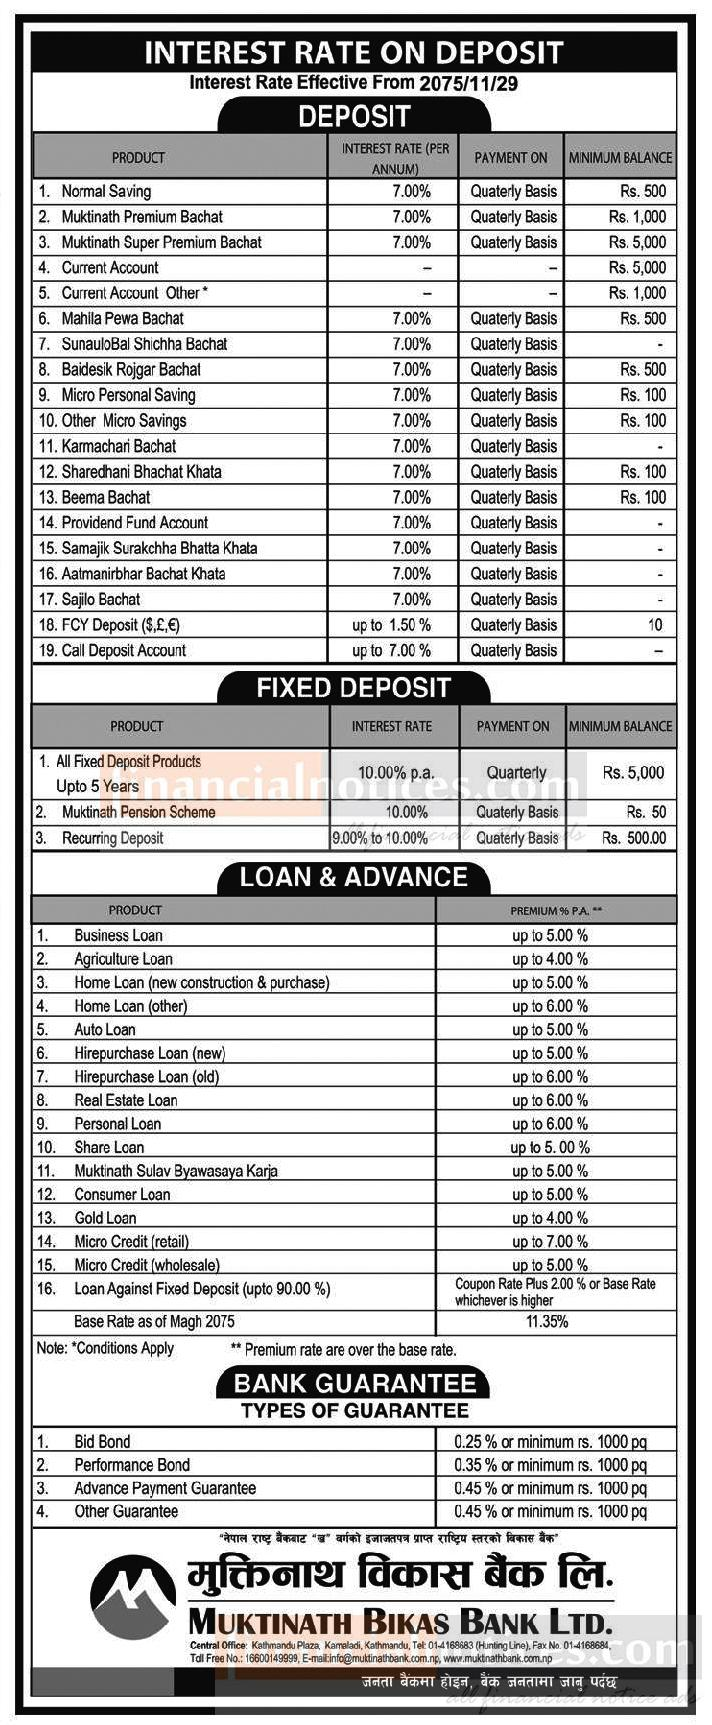 Interest Rate Rate on Deposit